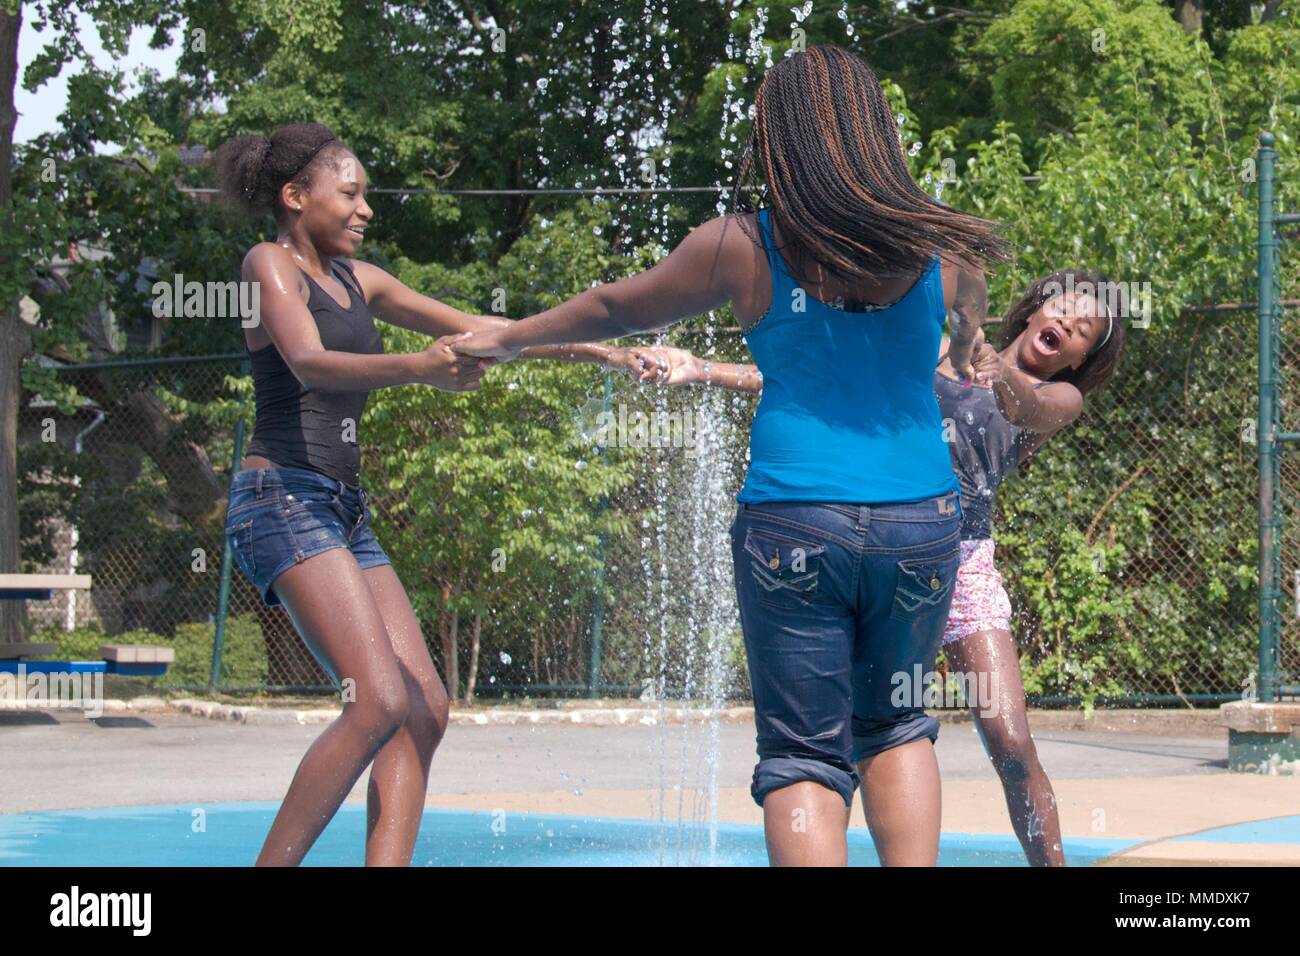 July 7, 2012 - Philadelphia, PA, USA:  Three young black women cool off in one of the city's public spray grounds on a hot summer day. - Stock Image